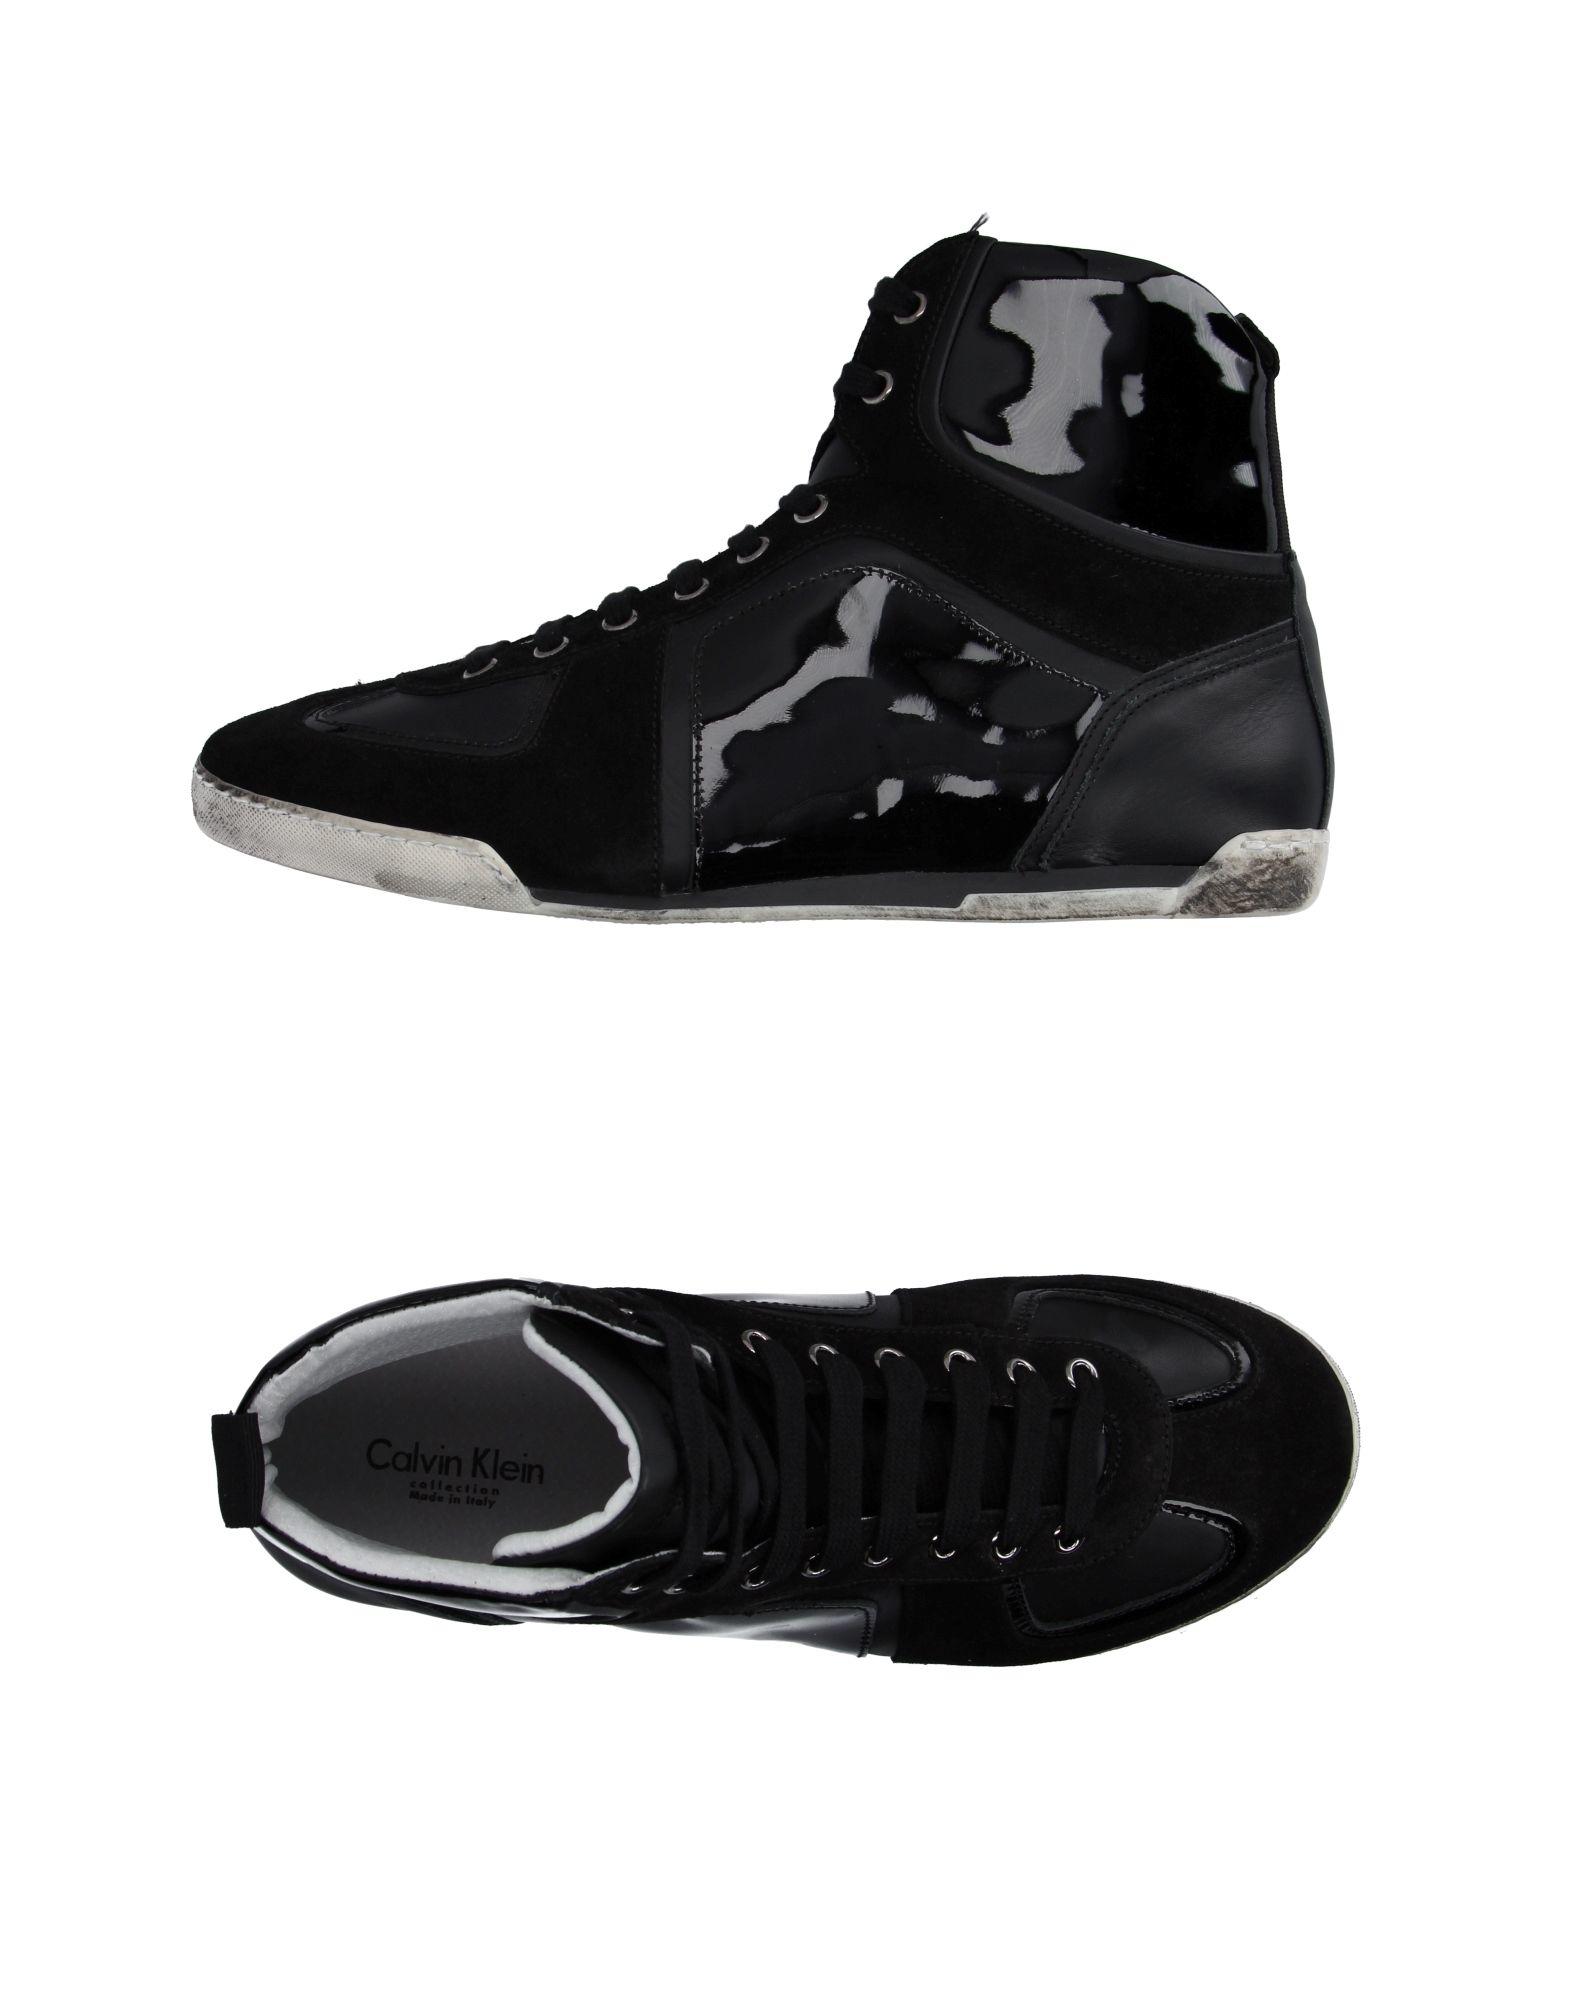 calvin klein high tops sneakers in black for men lyst. Black Bedroom Furniture Sets. Home Design Ideas